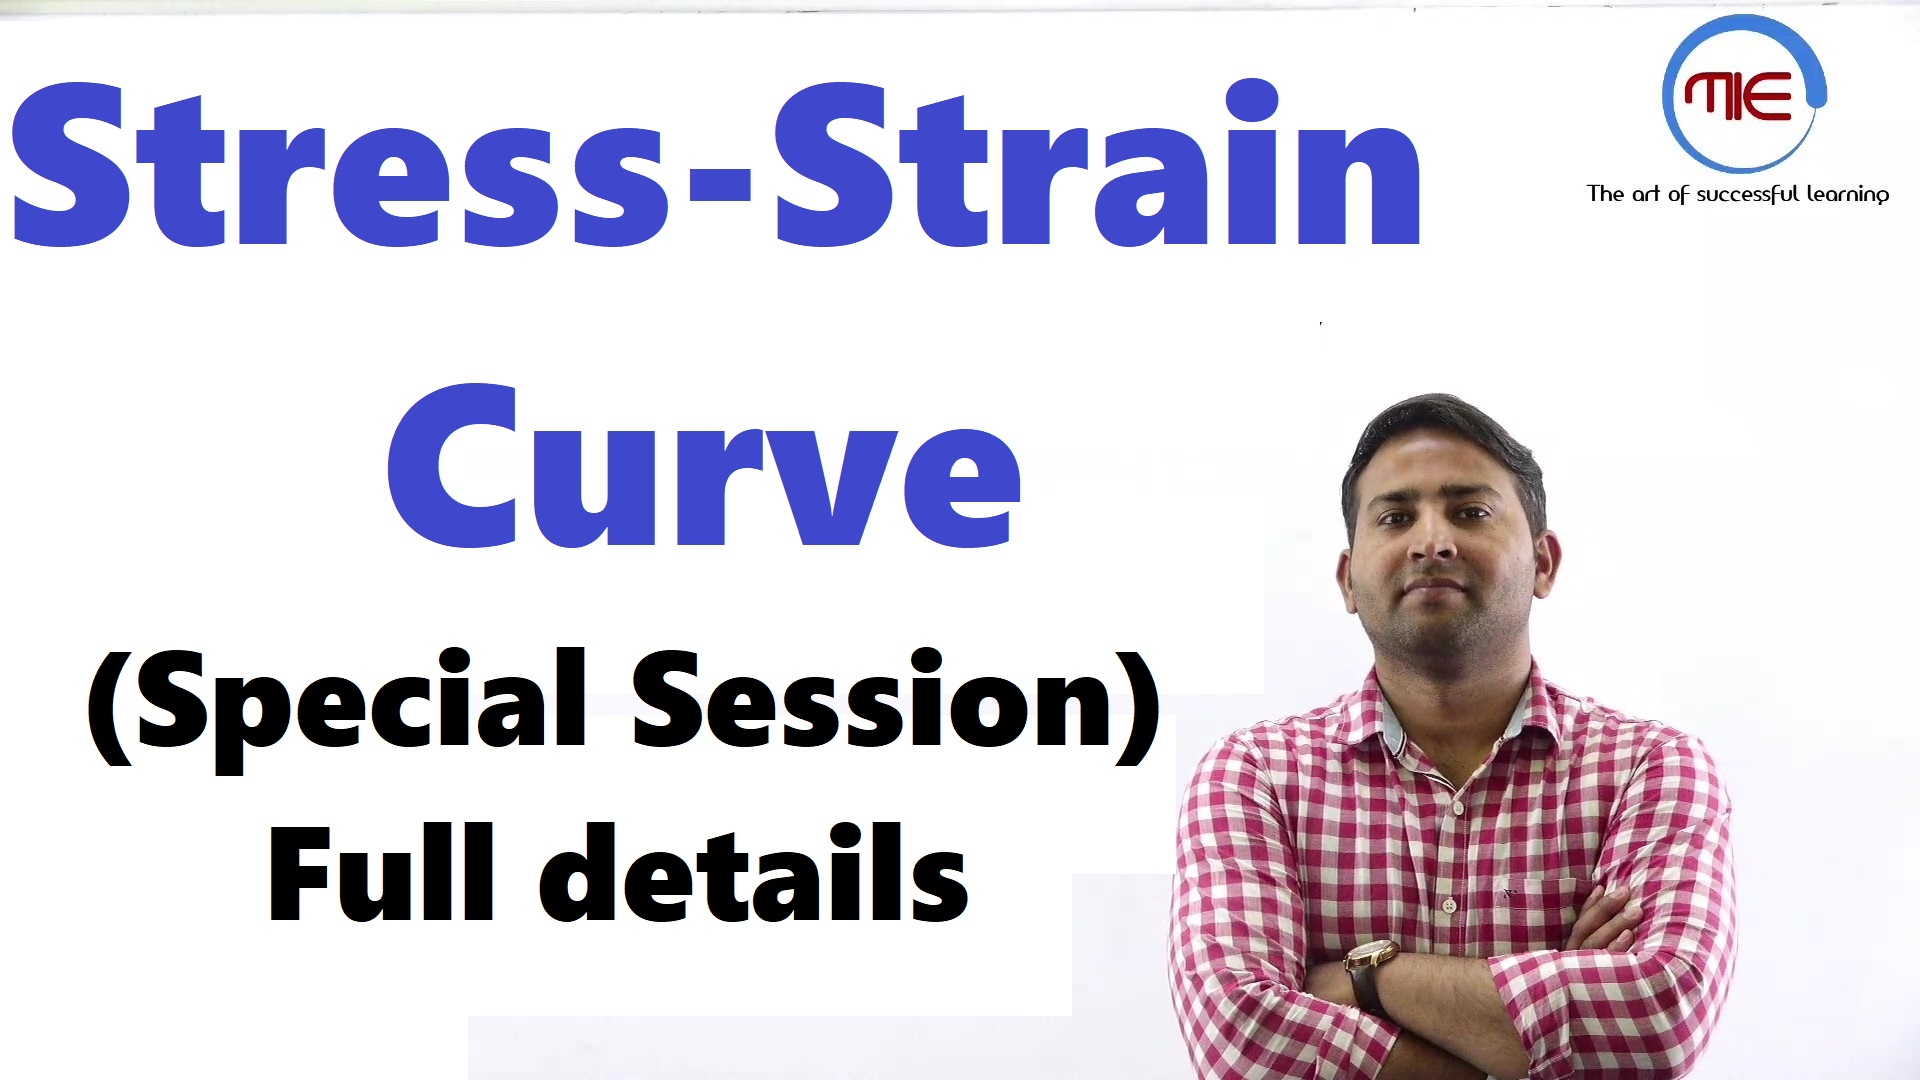 Lec 39 Stress Strain Curve Special Session